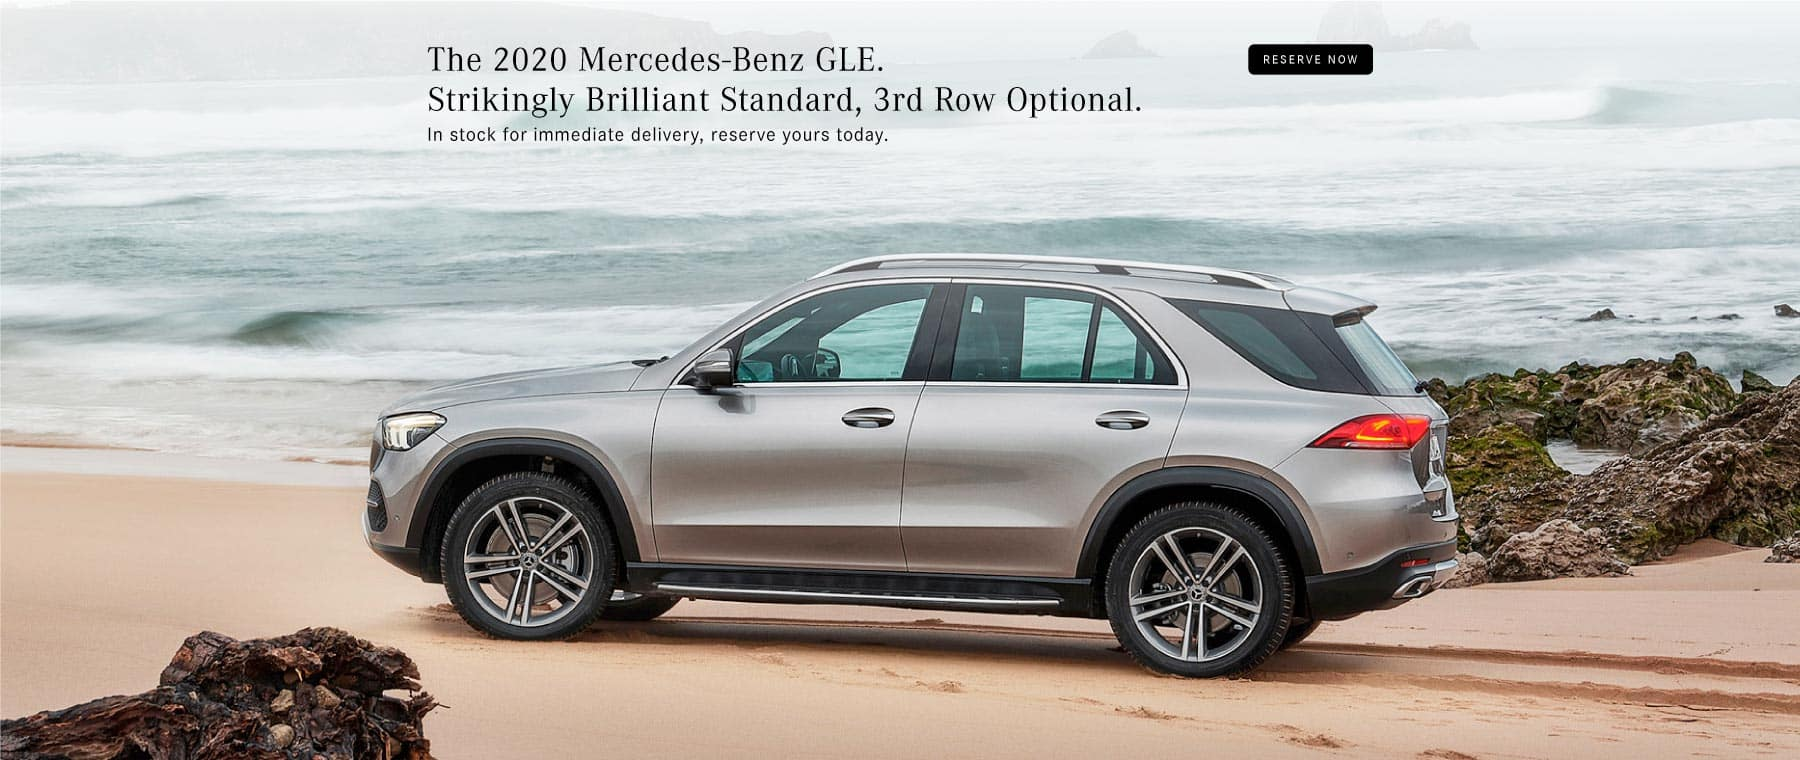 2020 GLE Reservations